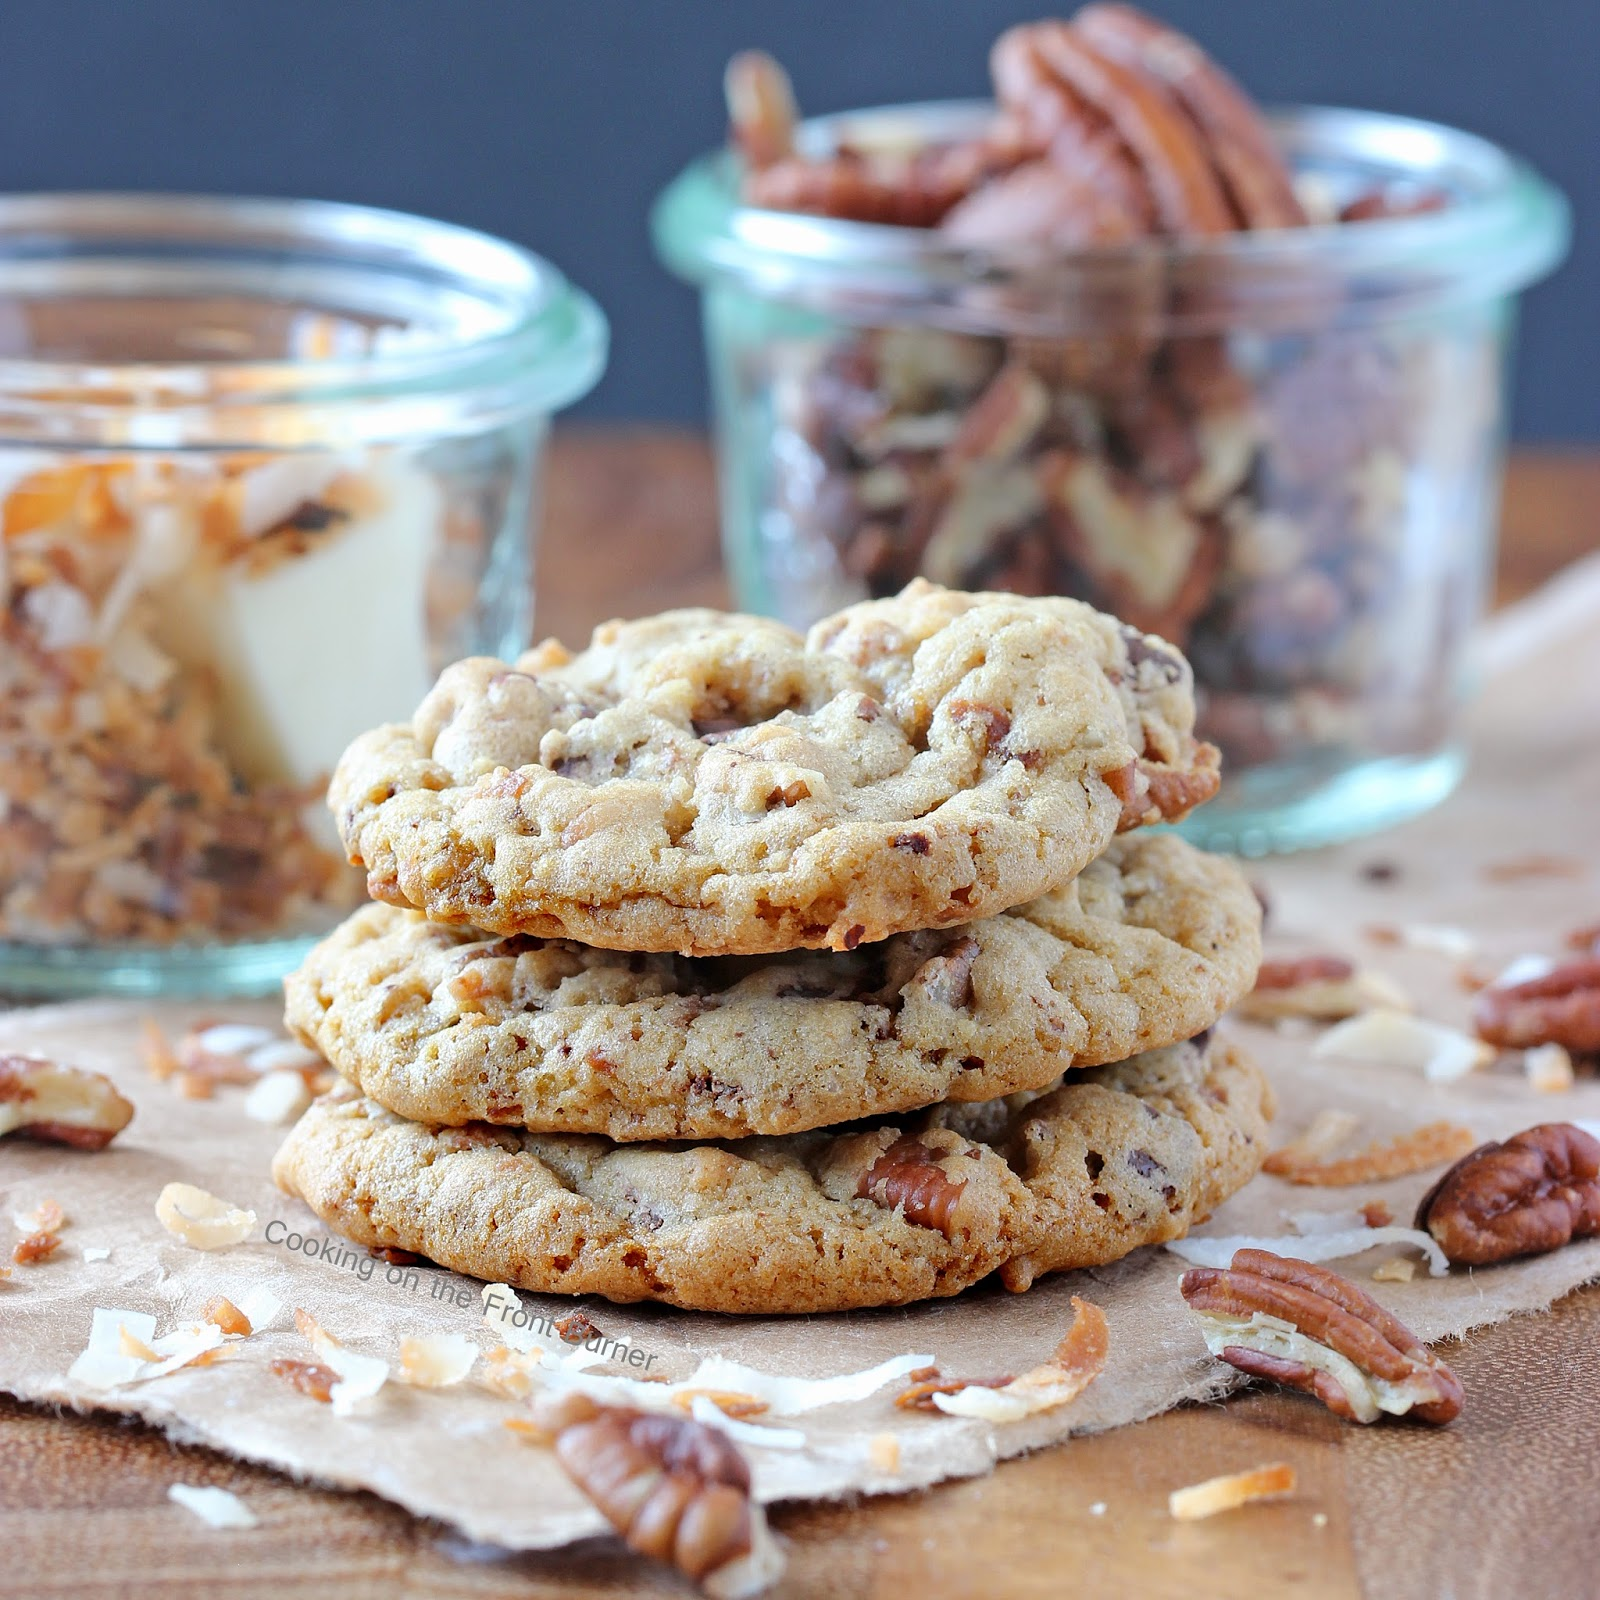 Chocolate Chunk Toasted Coconut and Pecan Cookies | Cooking on the Front Burner